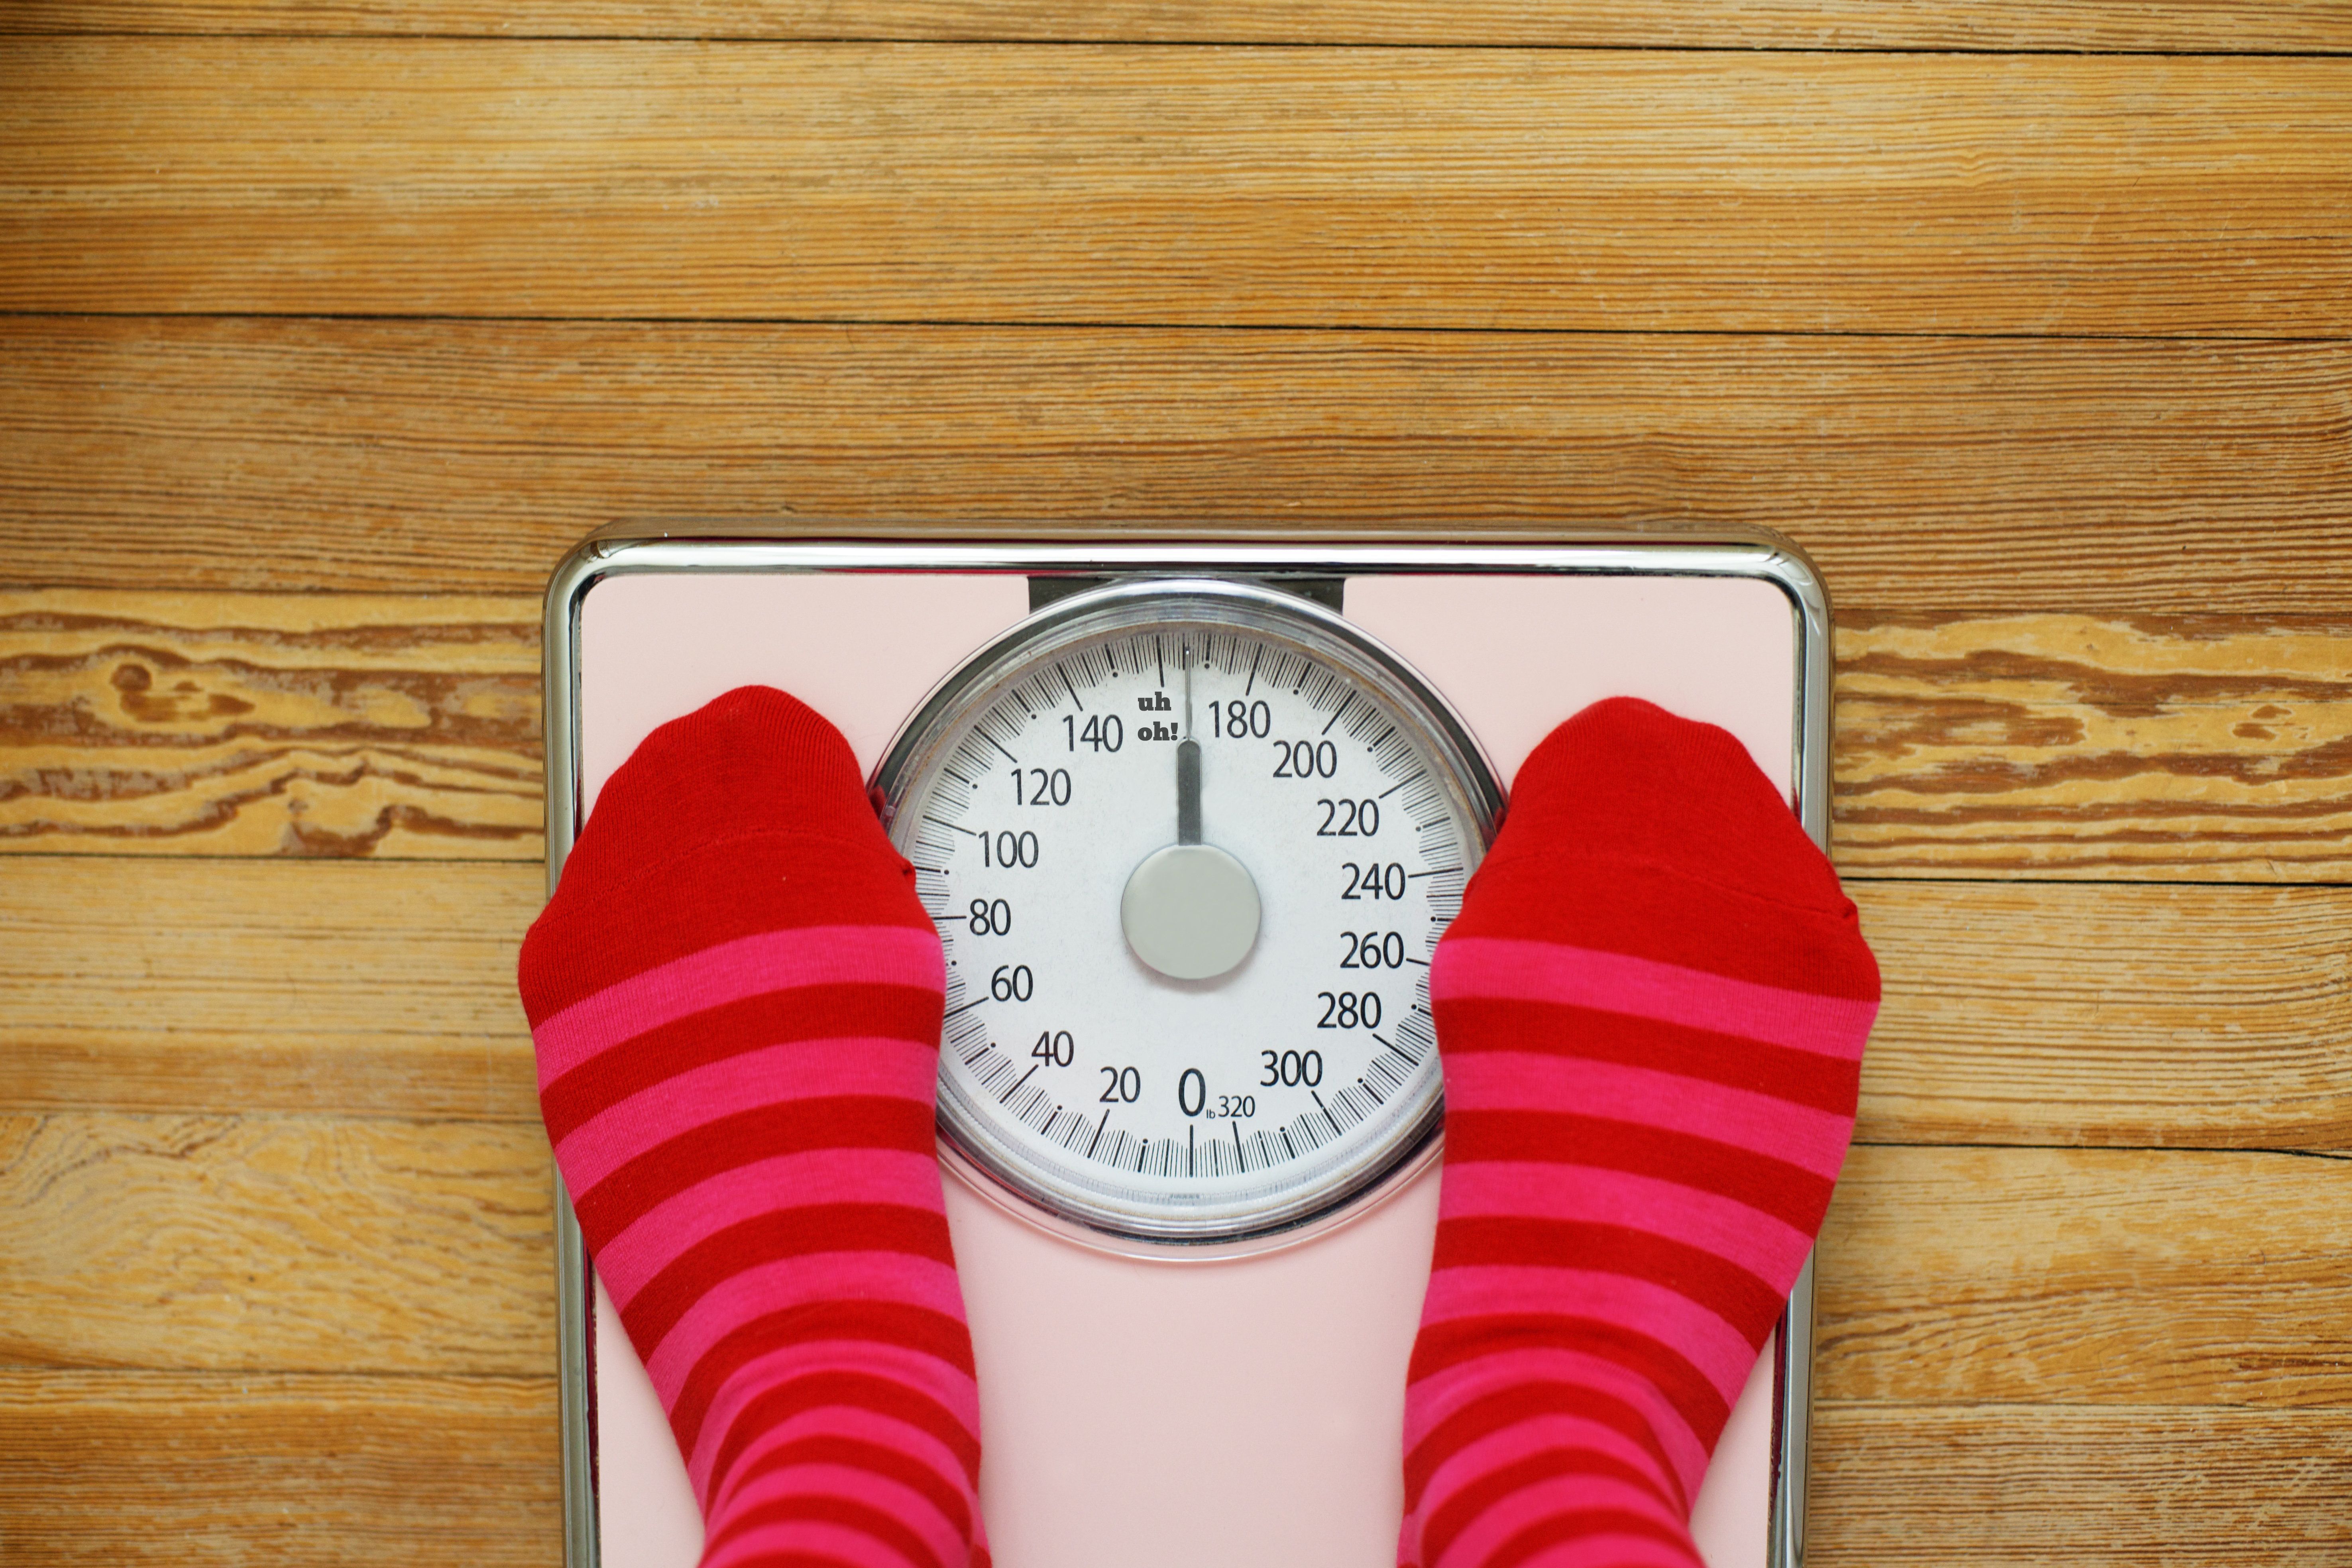 Normal weight women who gained or lost more than 10 pounds over the course of a decade were at an increased risk of dying of